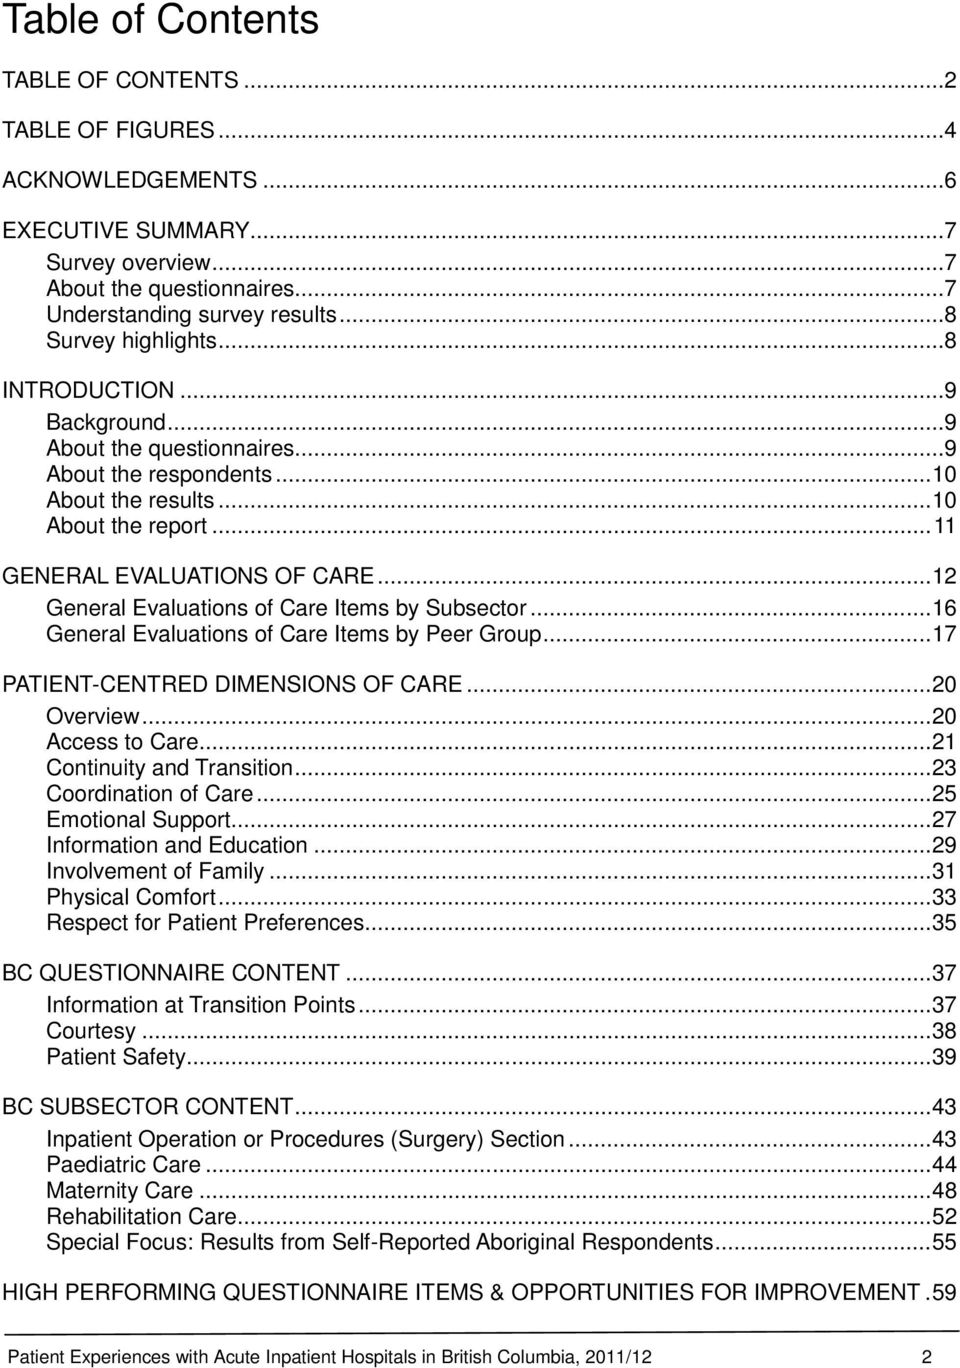 .. 12 General Evaluations of Care Items by Subsector... 16 General Evaluations of Care Items by Peer Group... 17 PATIENT-CENTRED DIMENSIONS OF CARE... 20 Overview... 20 Access to Care.